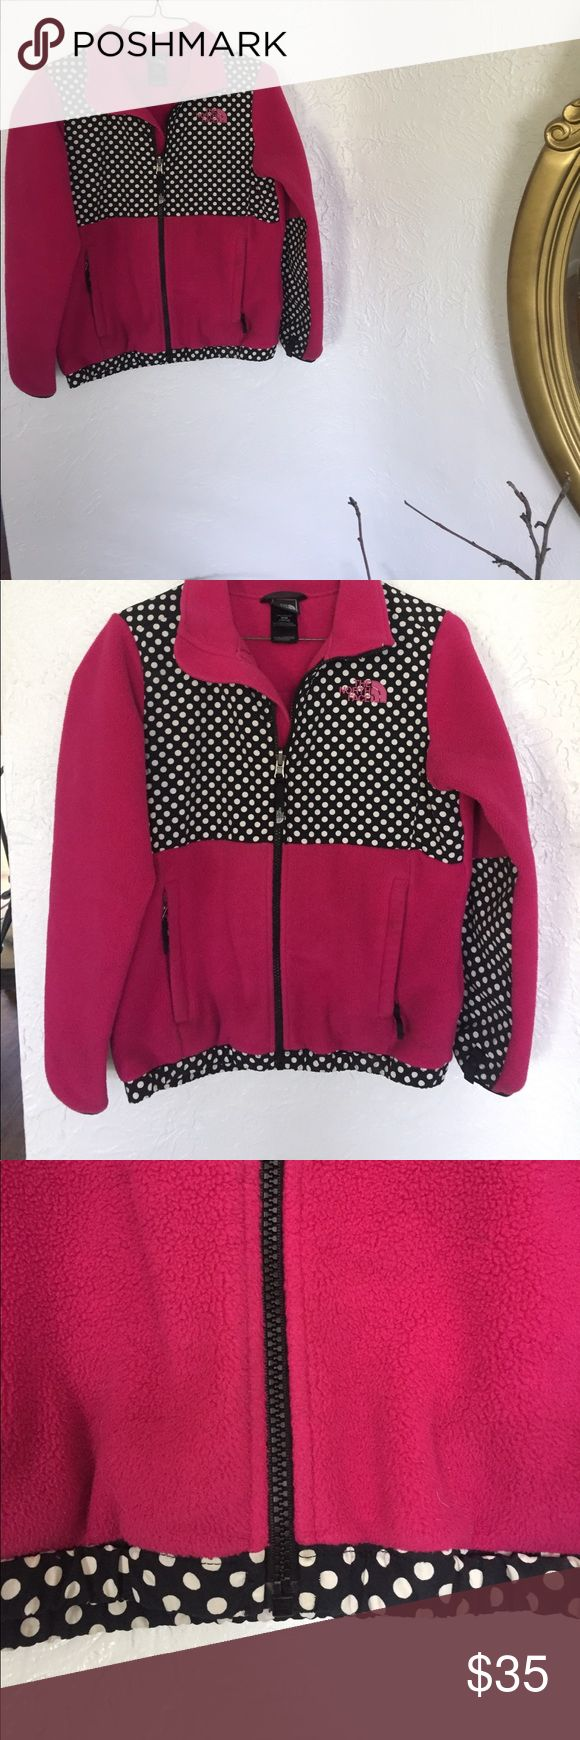 Girl's North Face jacket. It is a pink colored sweatshirt that zips up and it does not have a hood but it is very very cute and cozy! Girl's size 10/12 (M) The North Face Shirts & Tops Sweatshirts & Hoodies